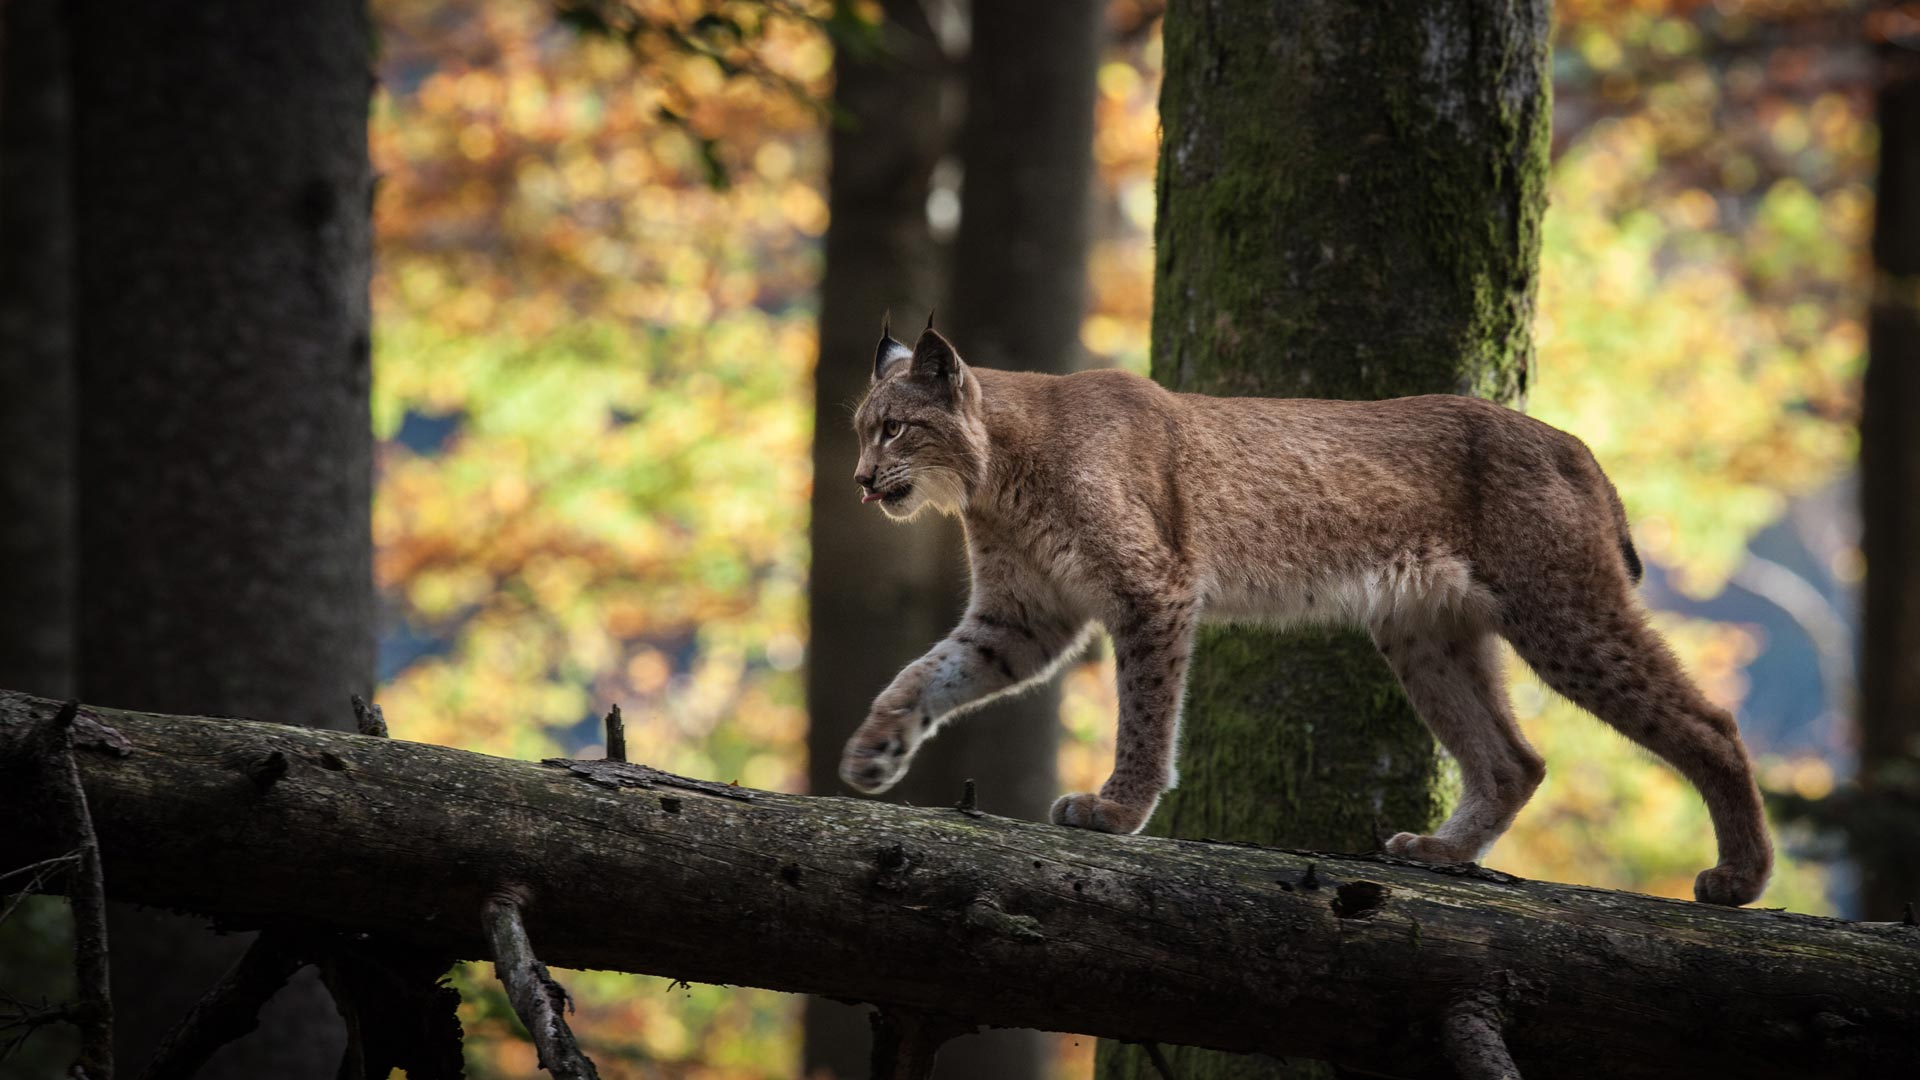 Adult lynx in forest. Kalkalpen National Park, Austria.